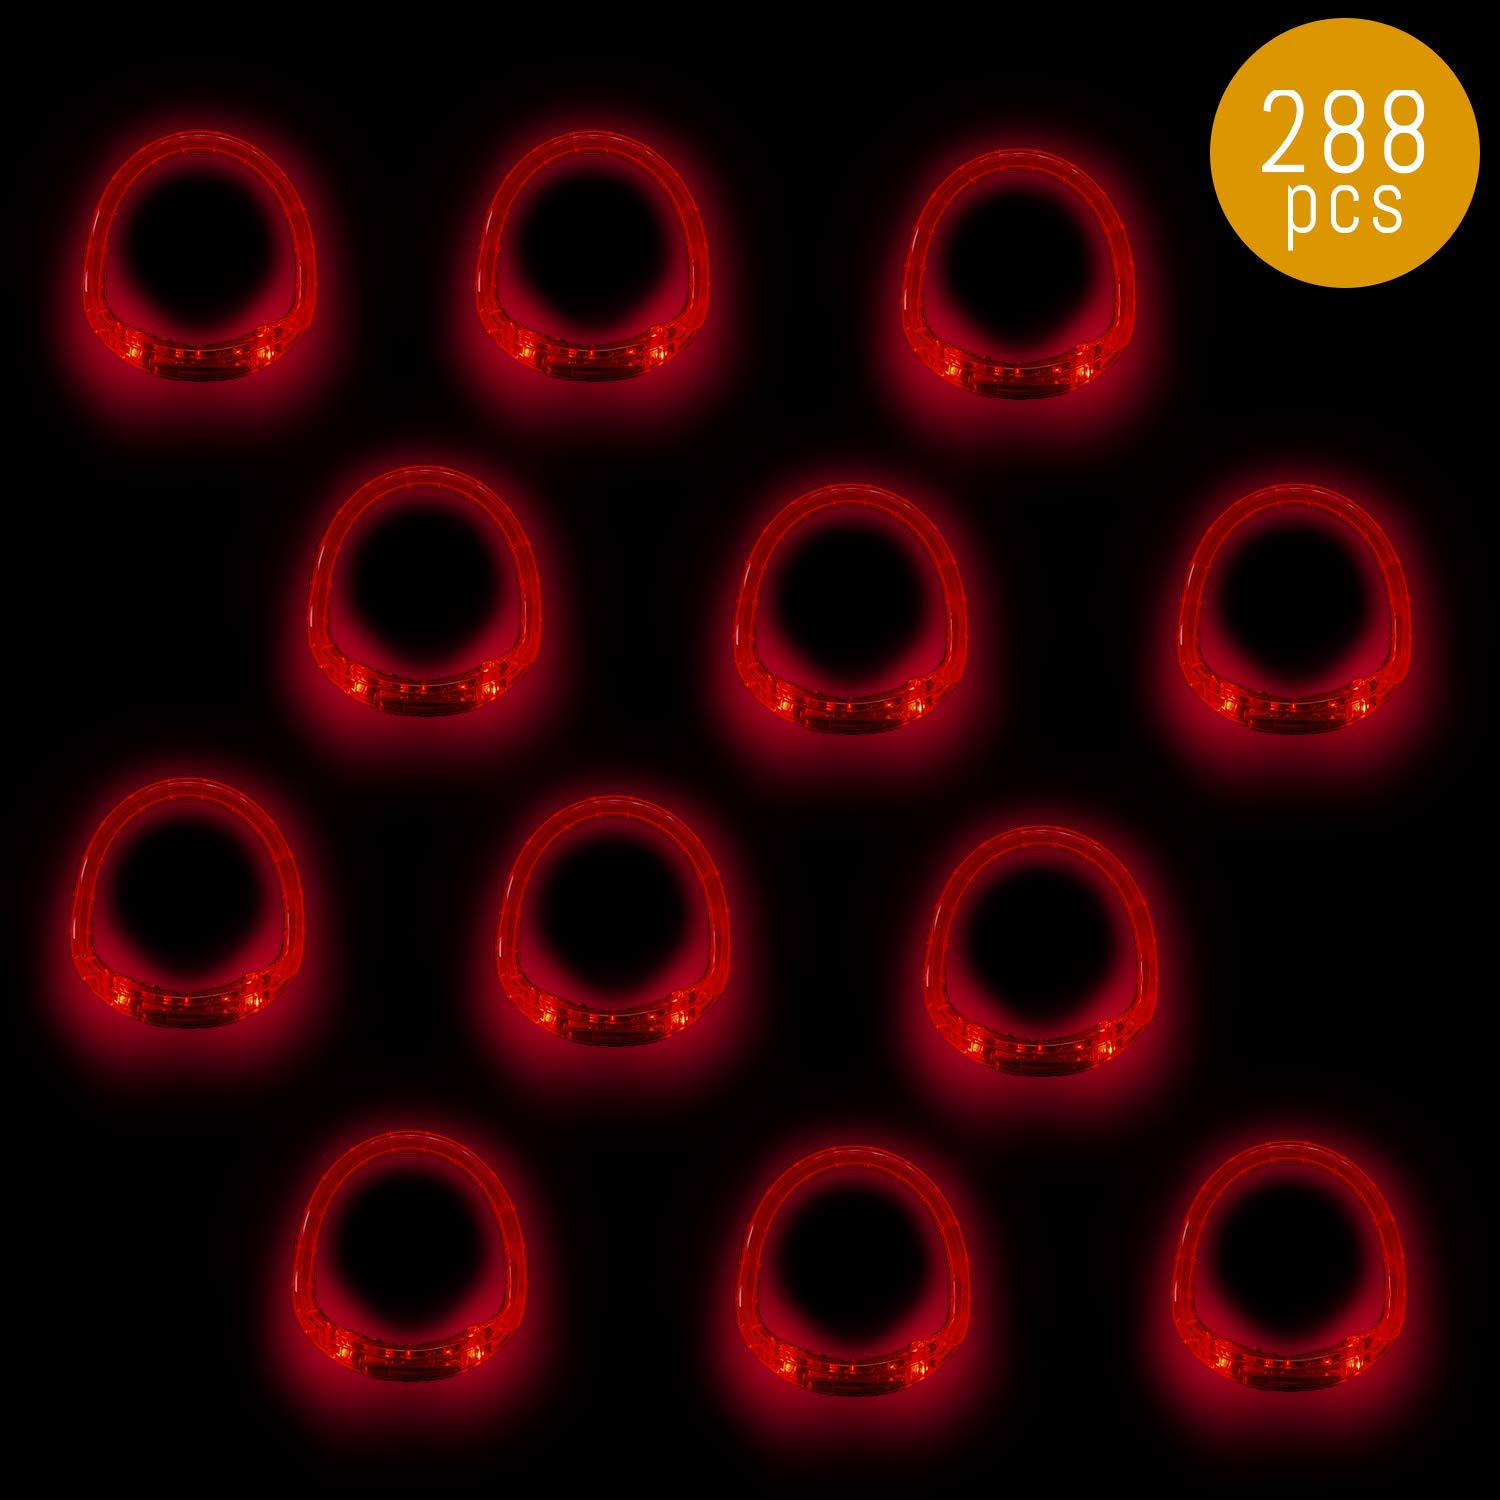 Lumistick LED Bracelet | Light Up Flashing Rivet Punk Silicone Blinking Wrist Bands Night Festival Parties Favors Glowing Toys Supplies (Red, 288 Bracelets)